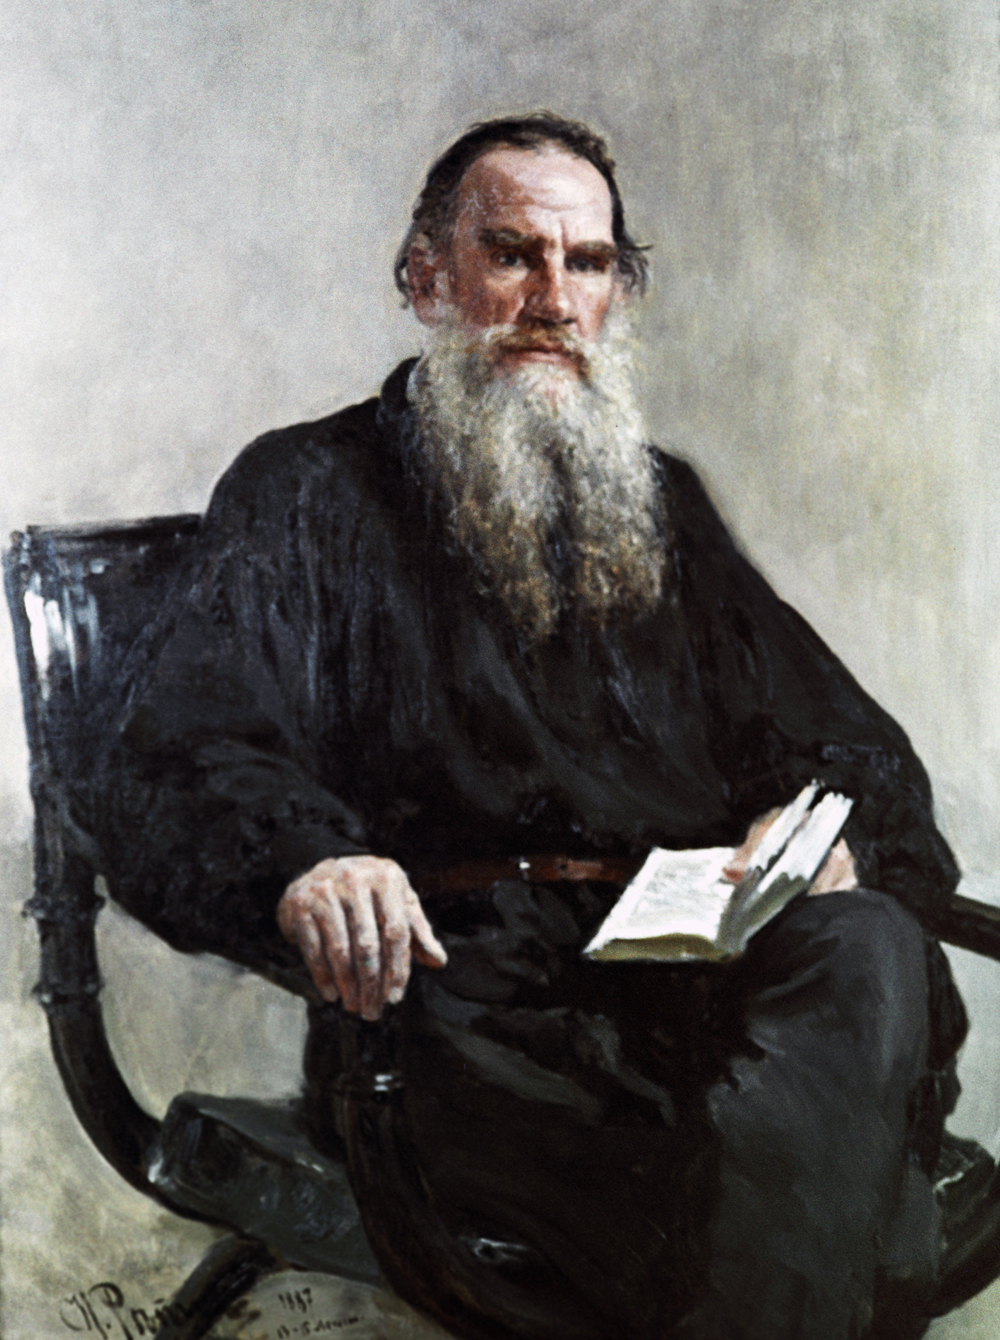 A copy of the portrait of Leo Tolstoy by Ilya Repin from the collection of the State Pushkin Fine Arts Museum.